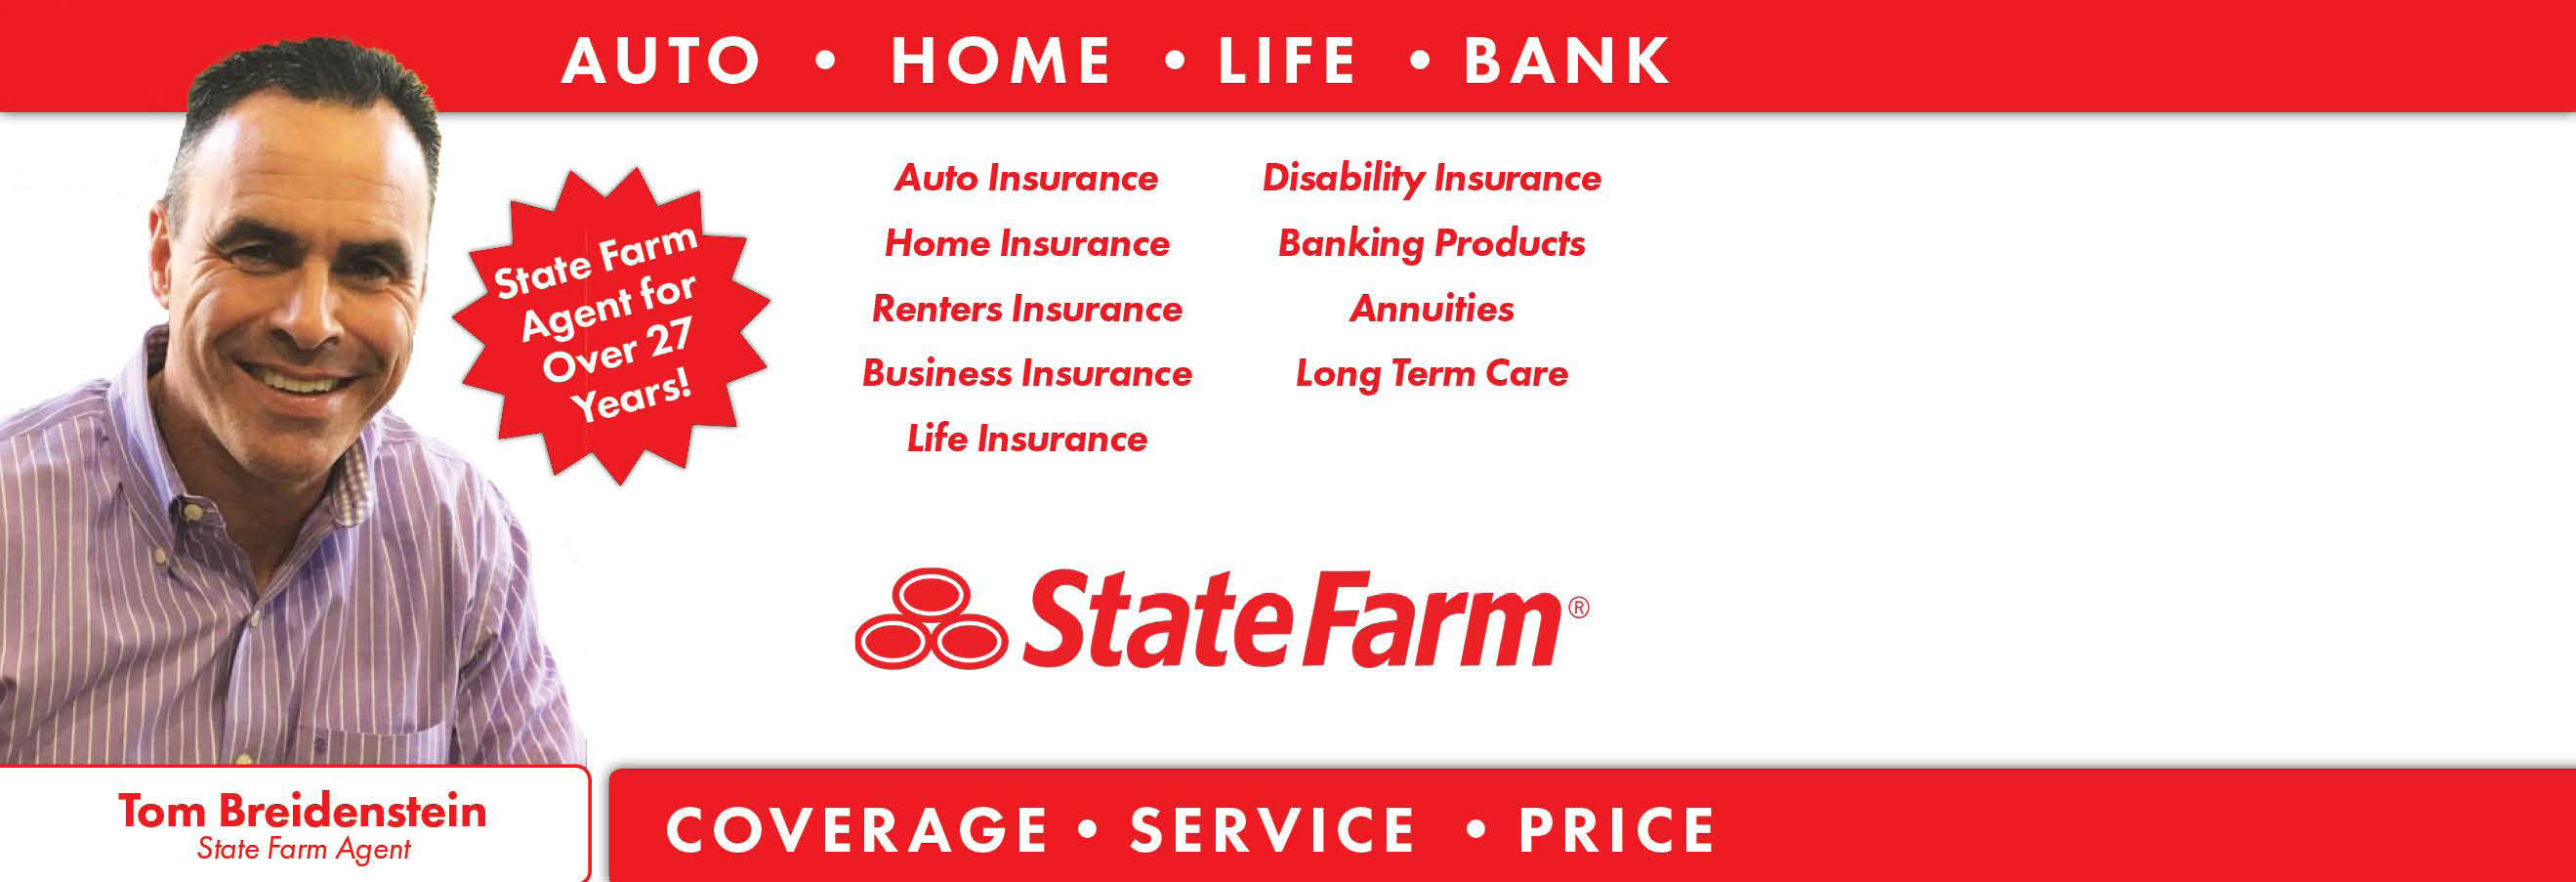 Tom Breidenstein, Insurance, Life, Auto, Home, Bank, Car Insurance, Coverage,